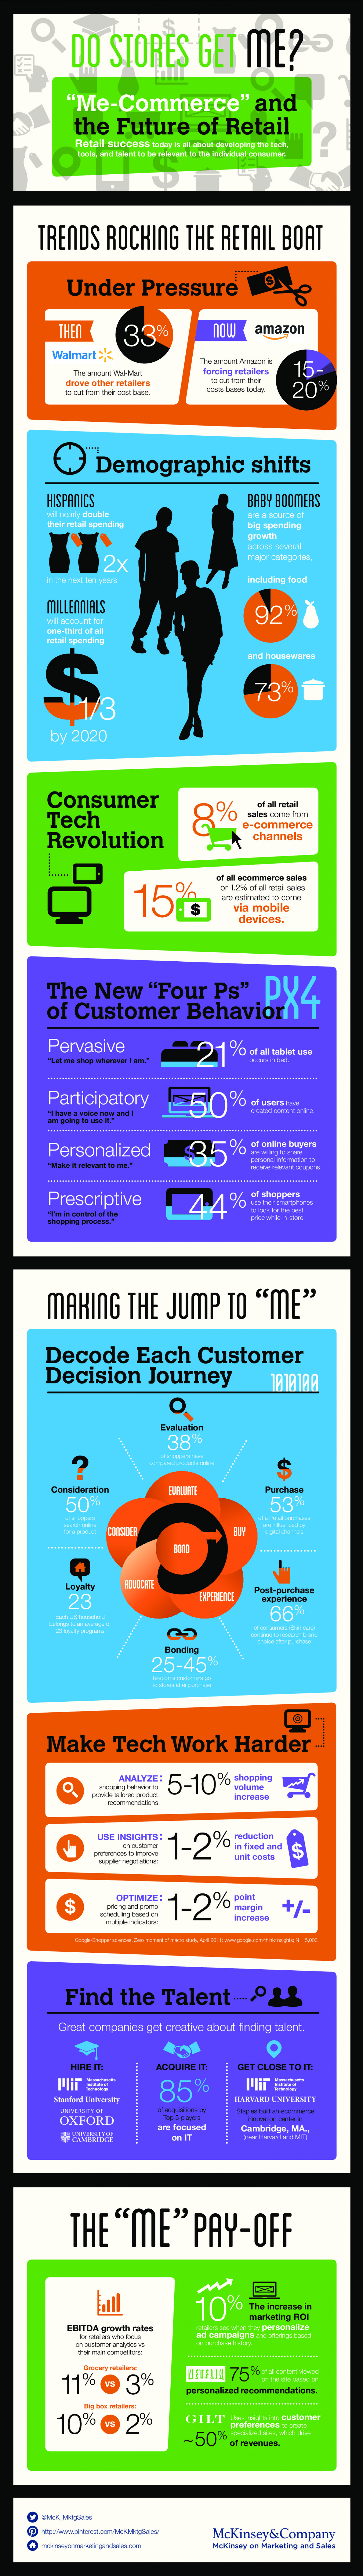 Me-Commerce & the Future of Retail  Infographic